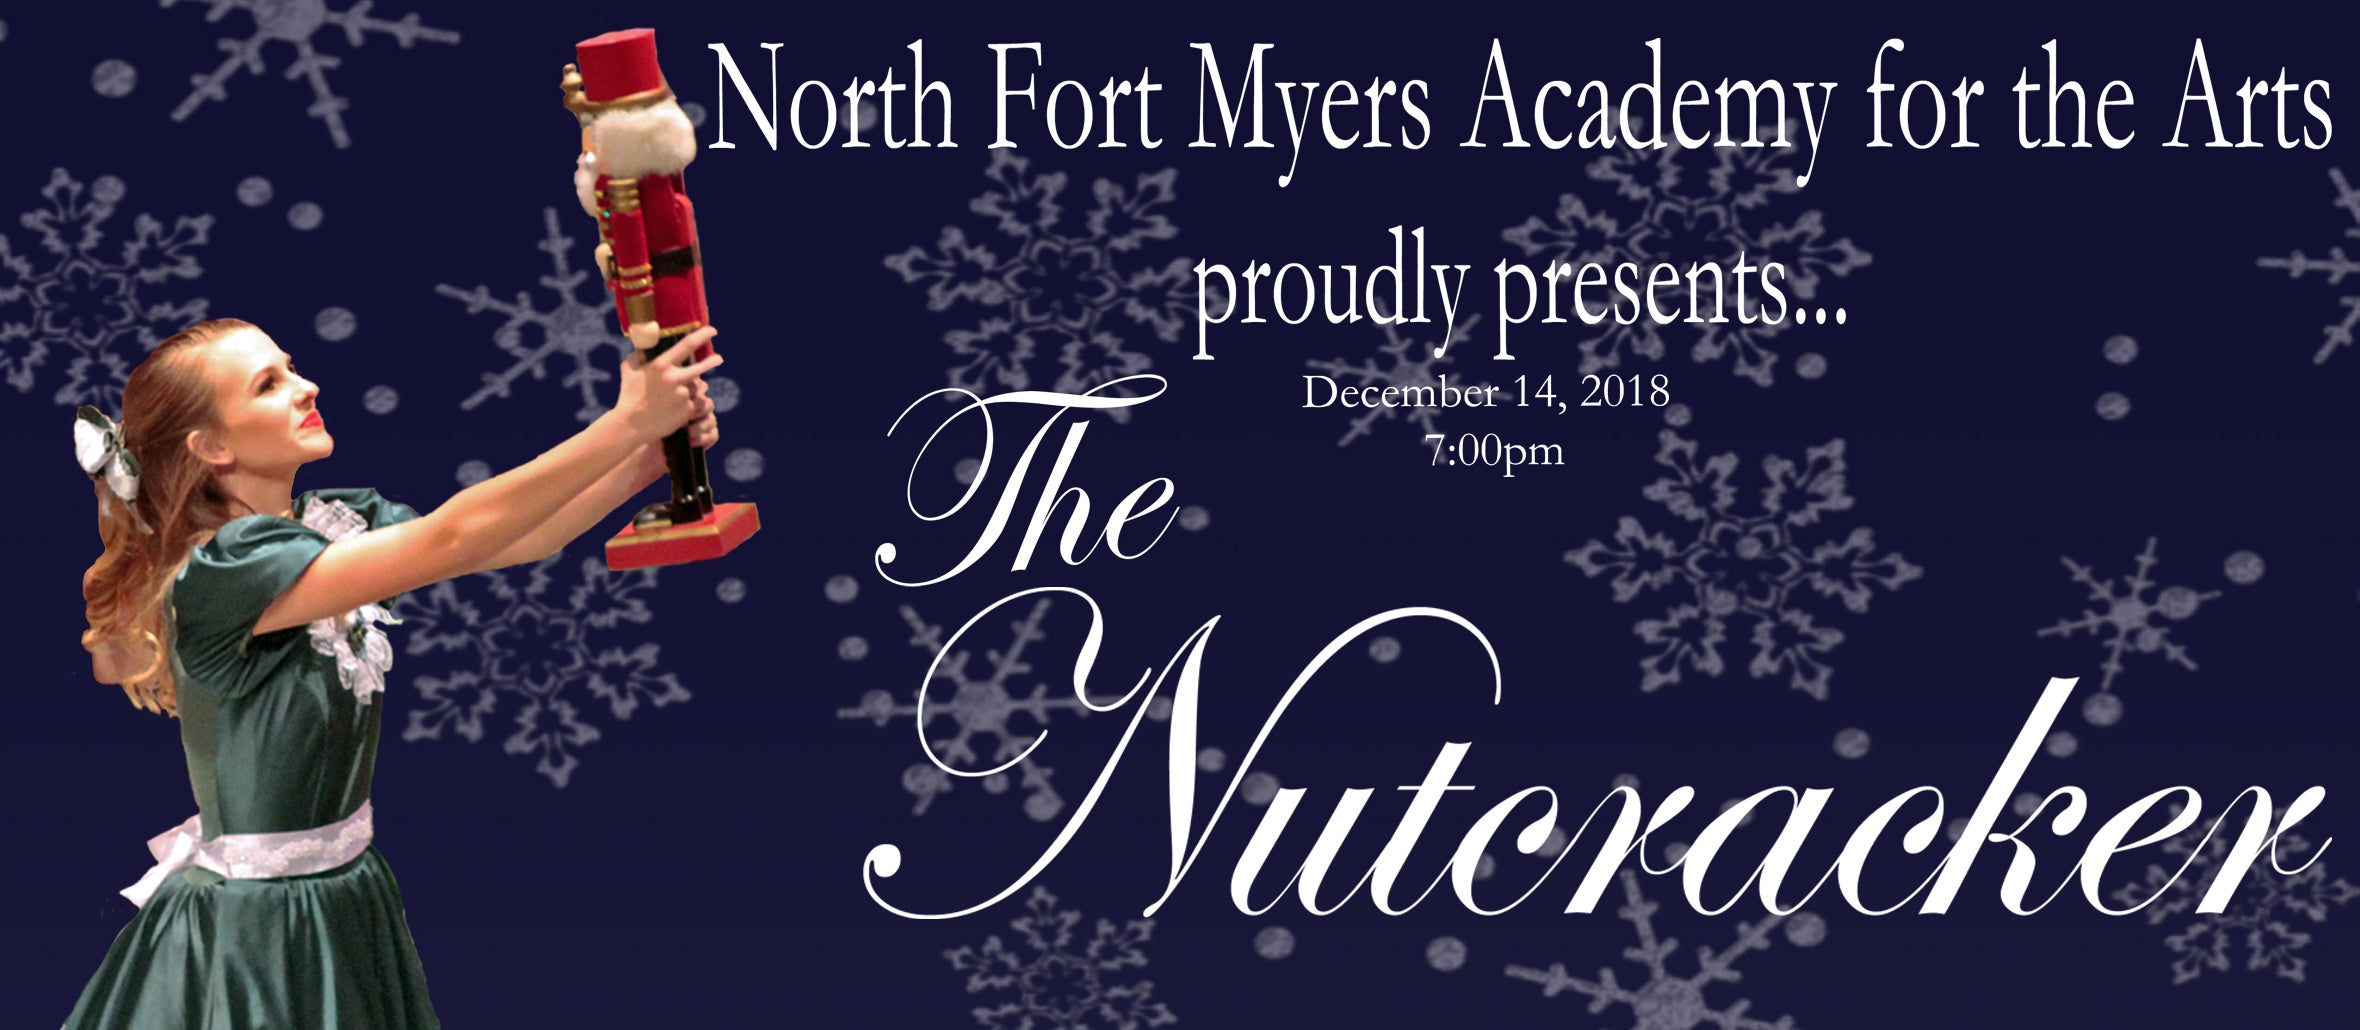 North Fort Myers Academy for the Arts proudly presents The Nutcracker